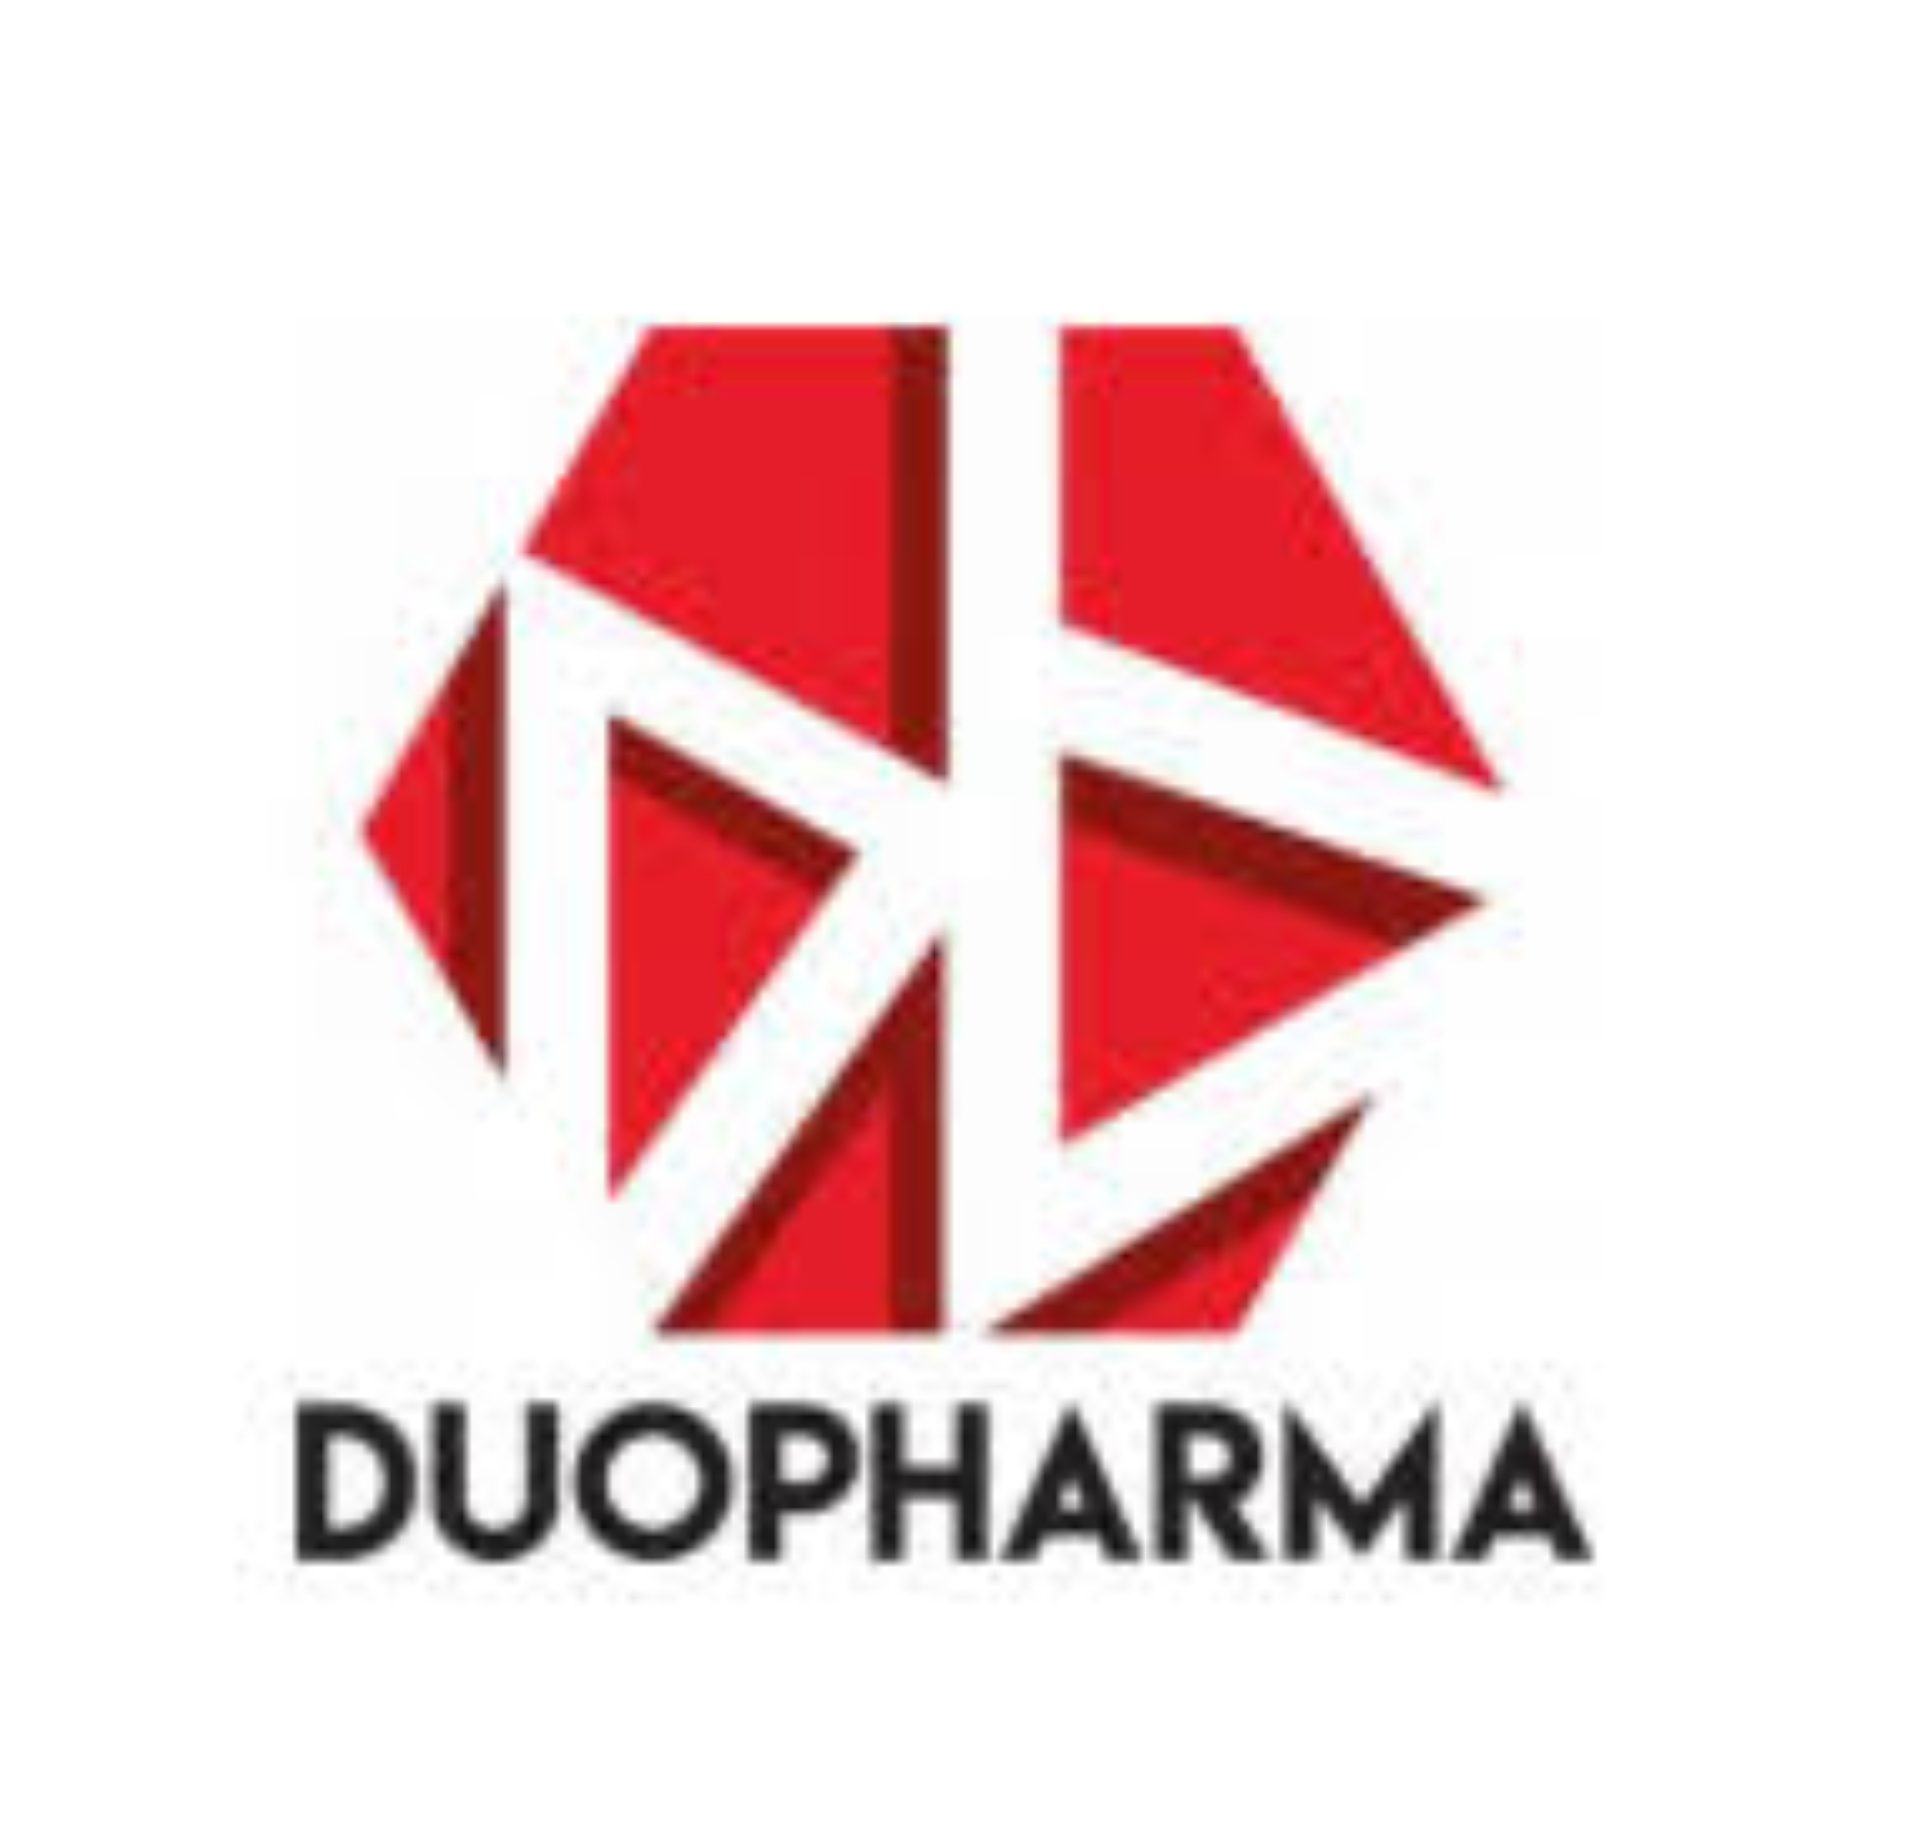 Duopharma expects the supply of insulin to the MOH to continue after contract expiry in December 2019.